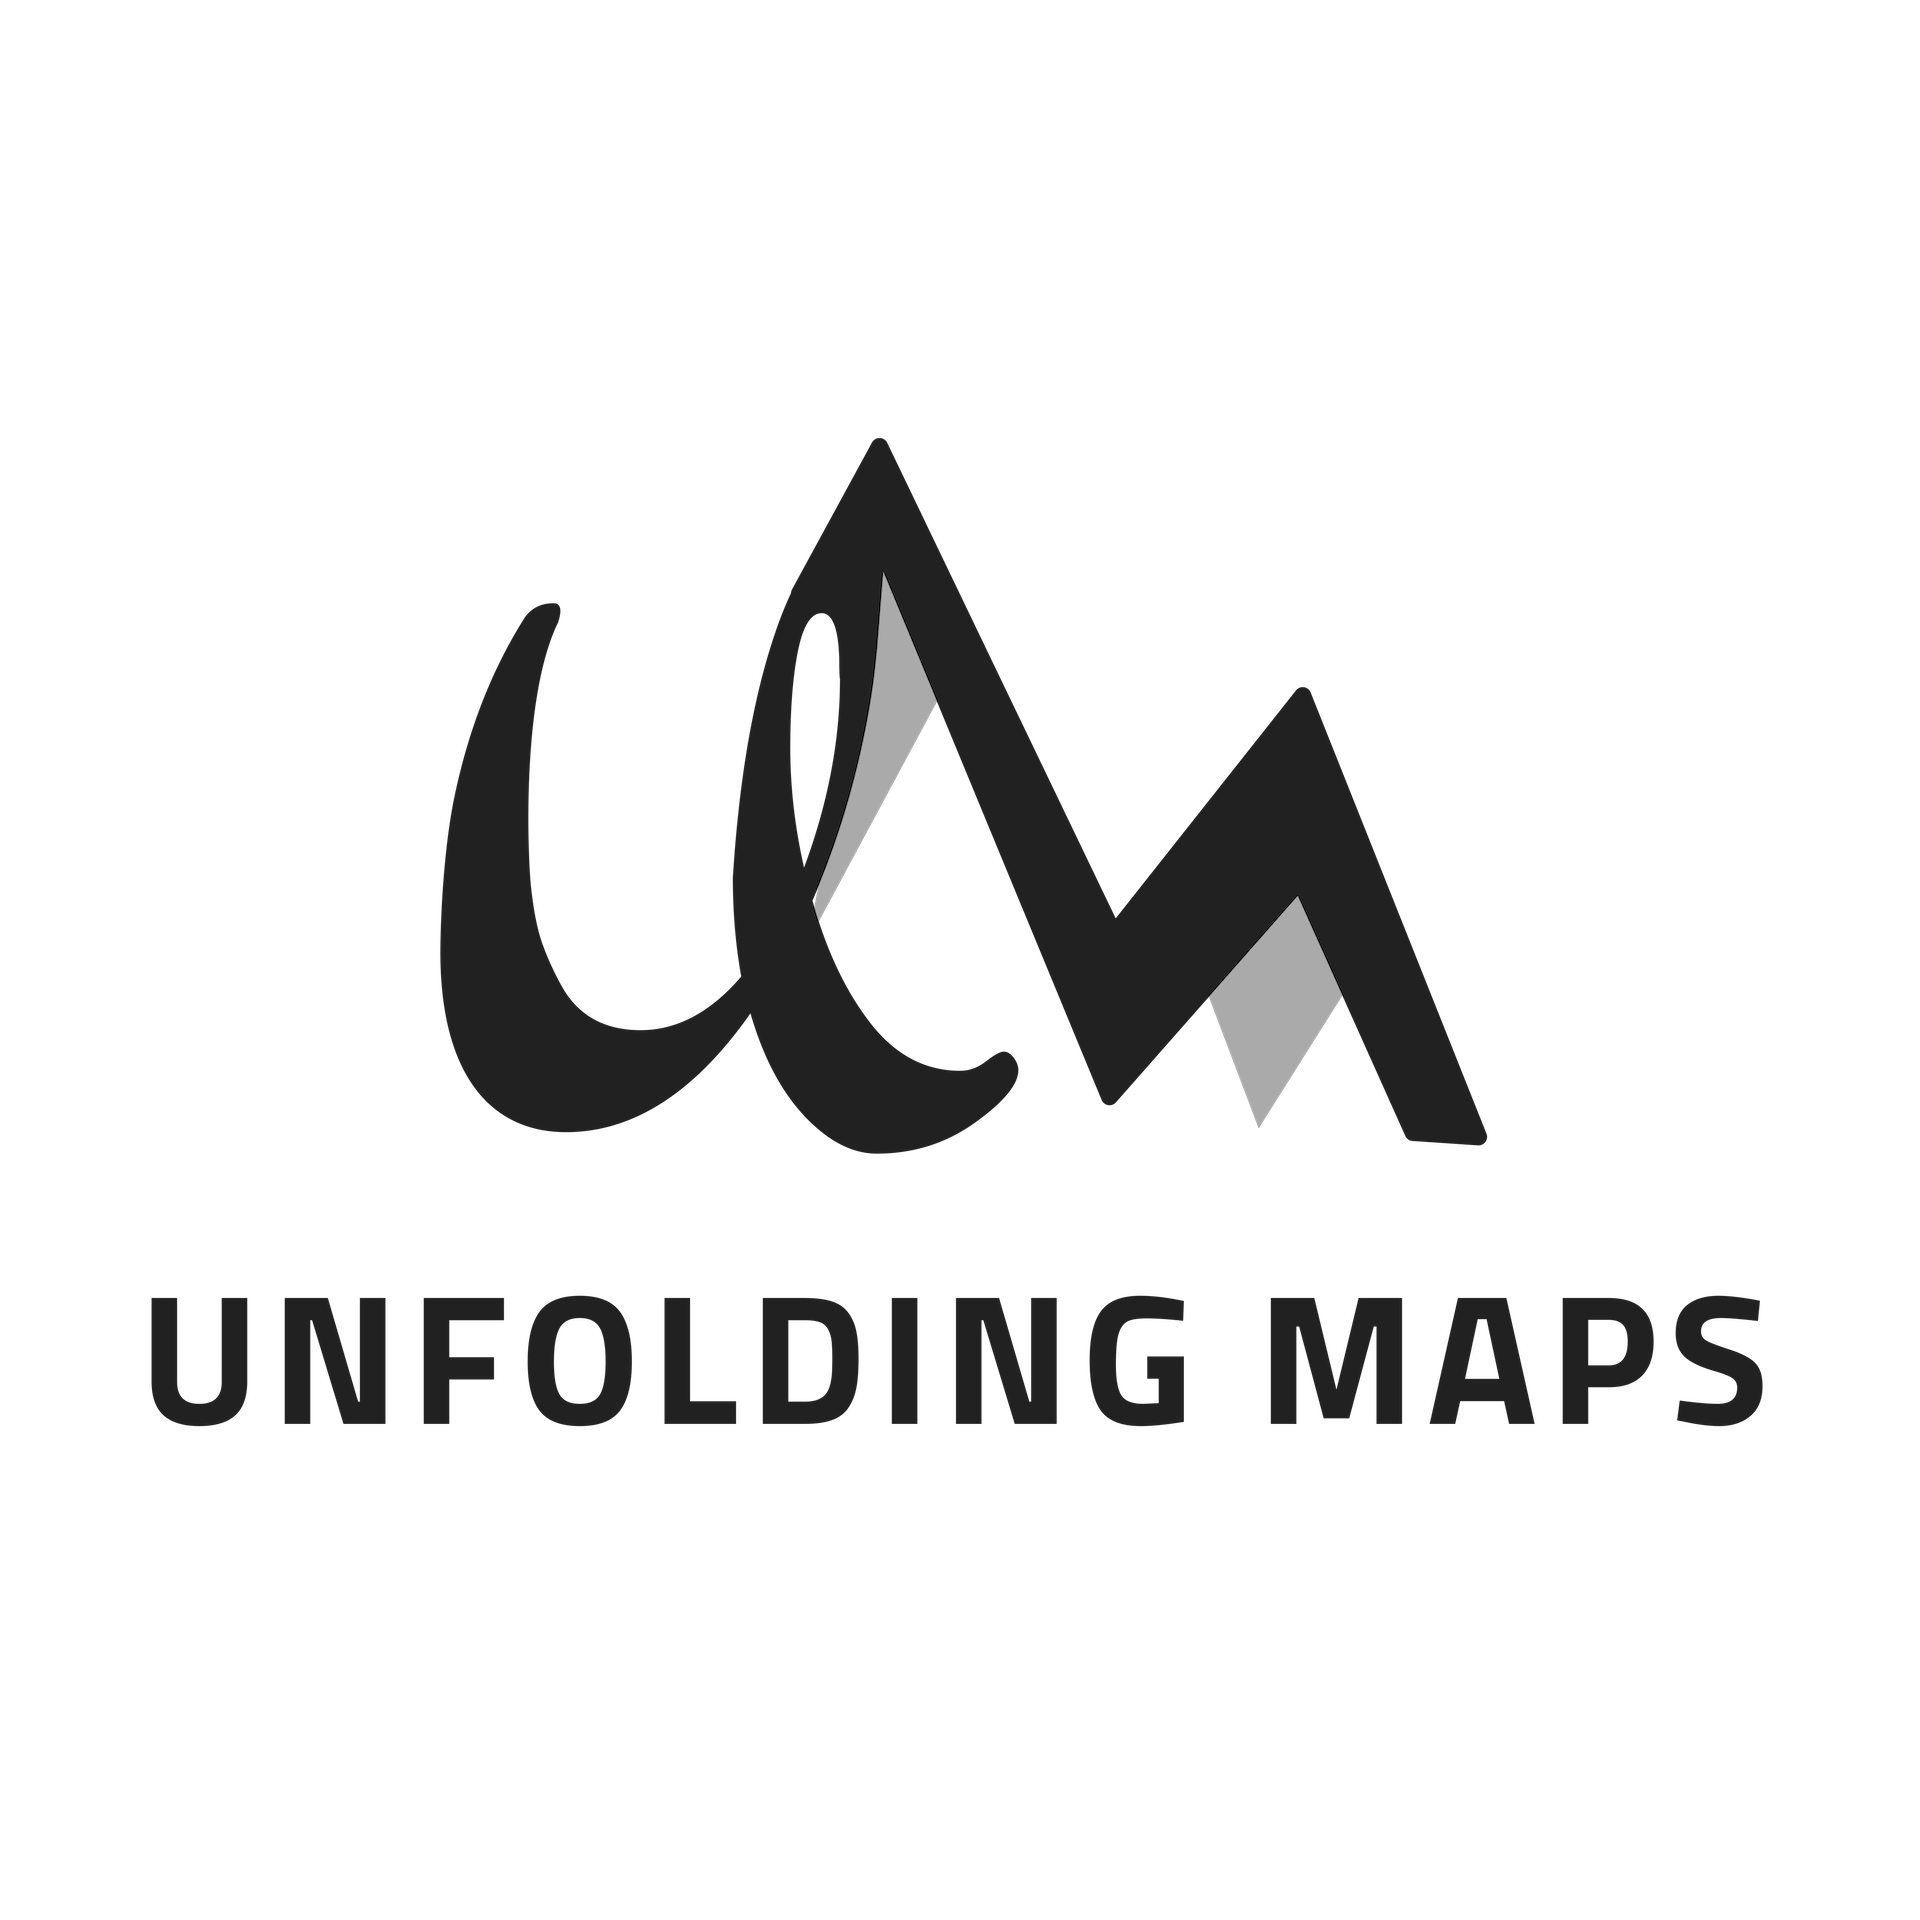 Unfolding Maps